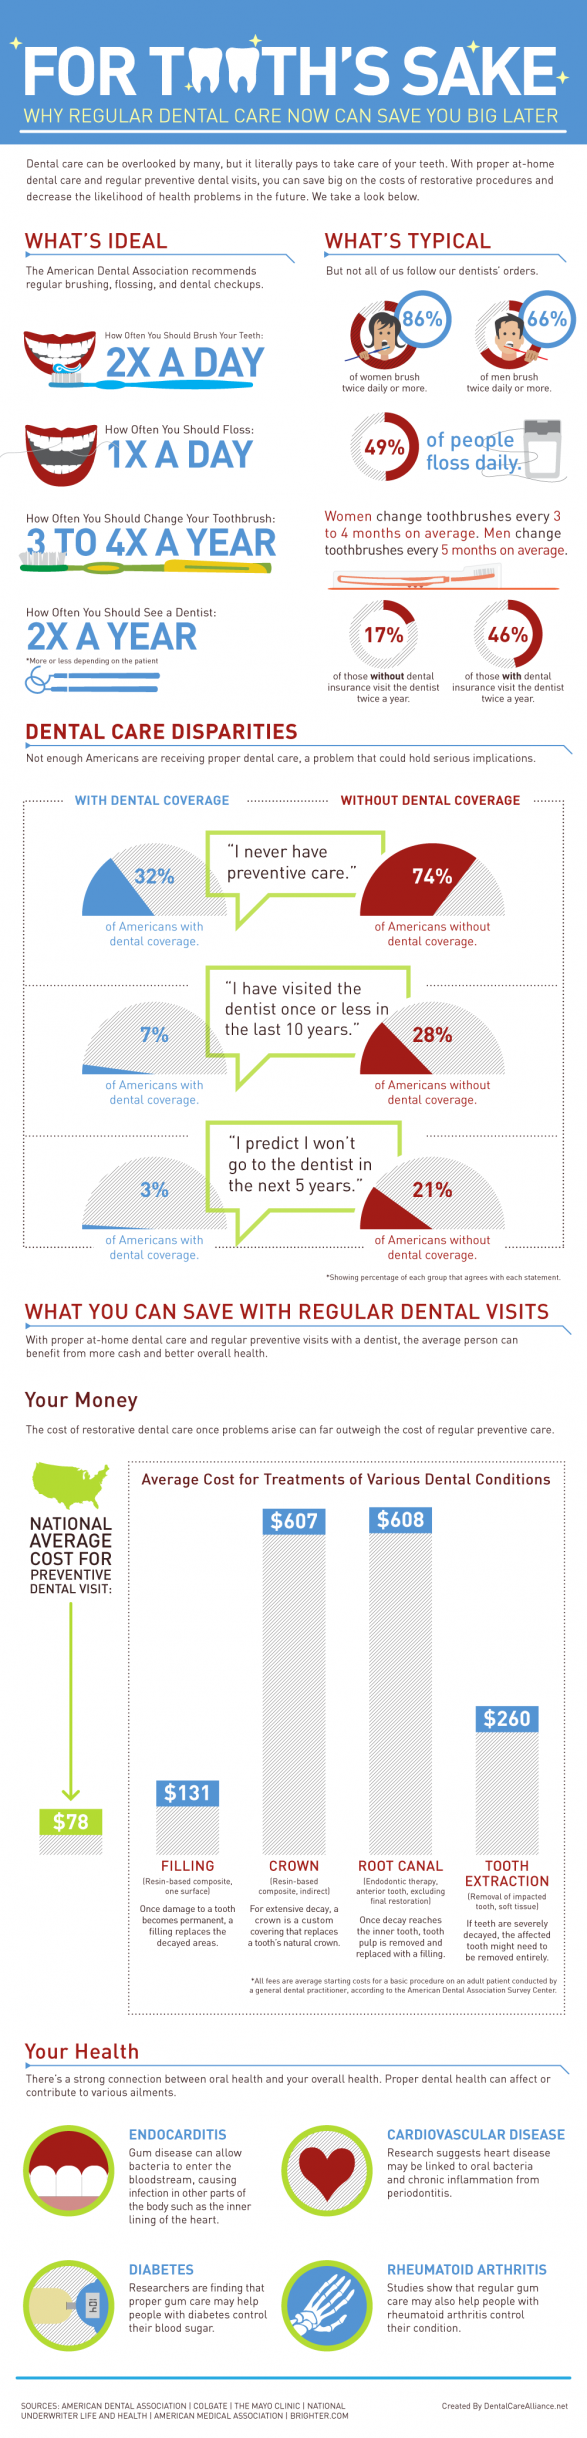 How regular dentist visits can save you money | A Dental Infographic